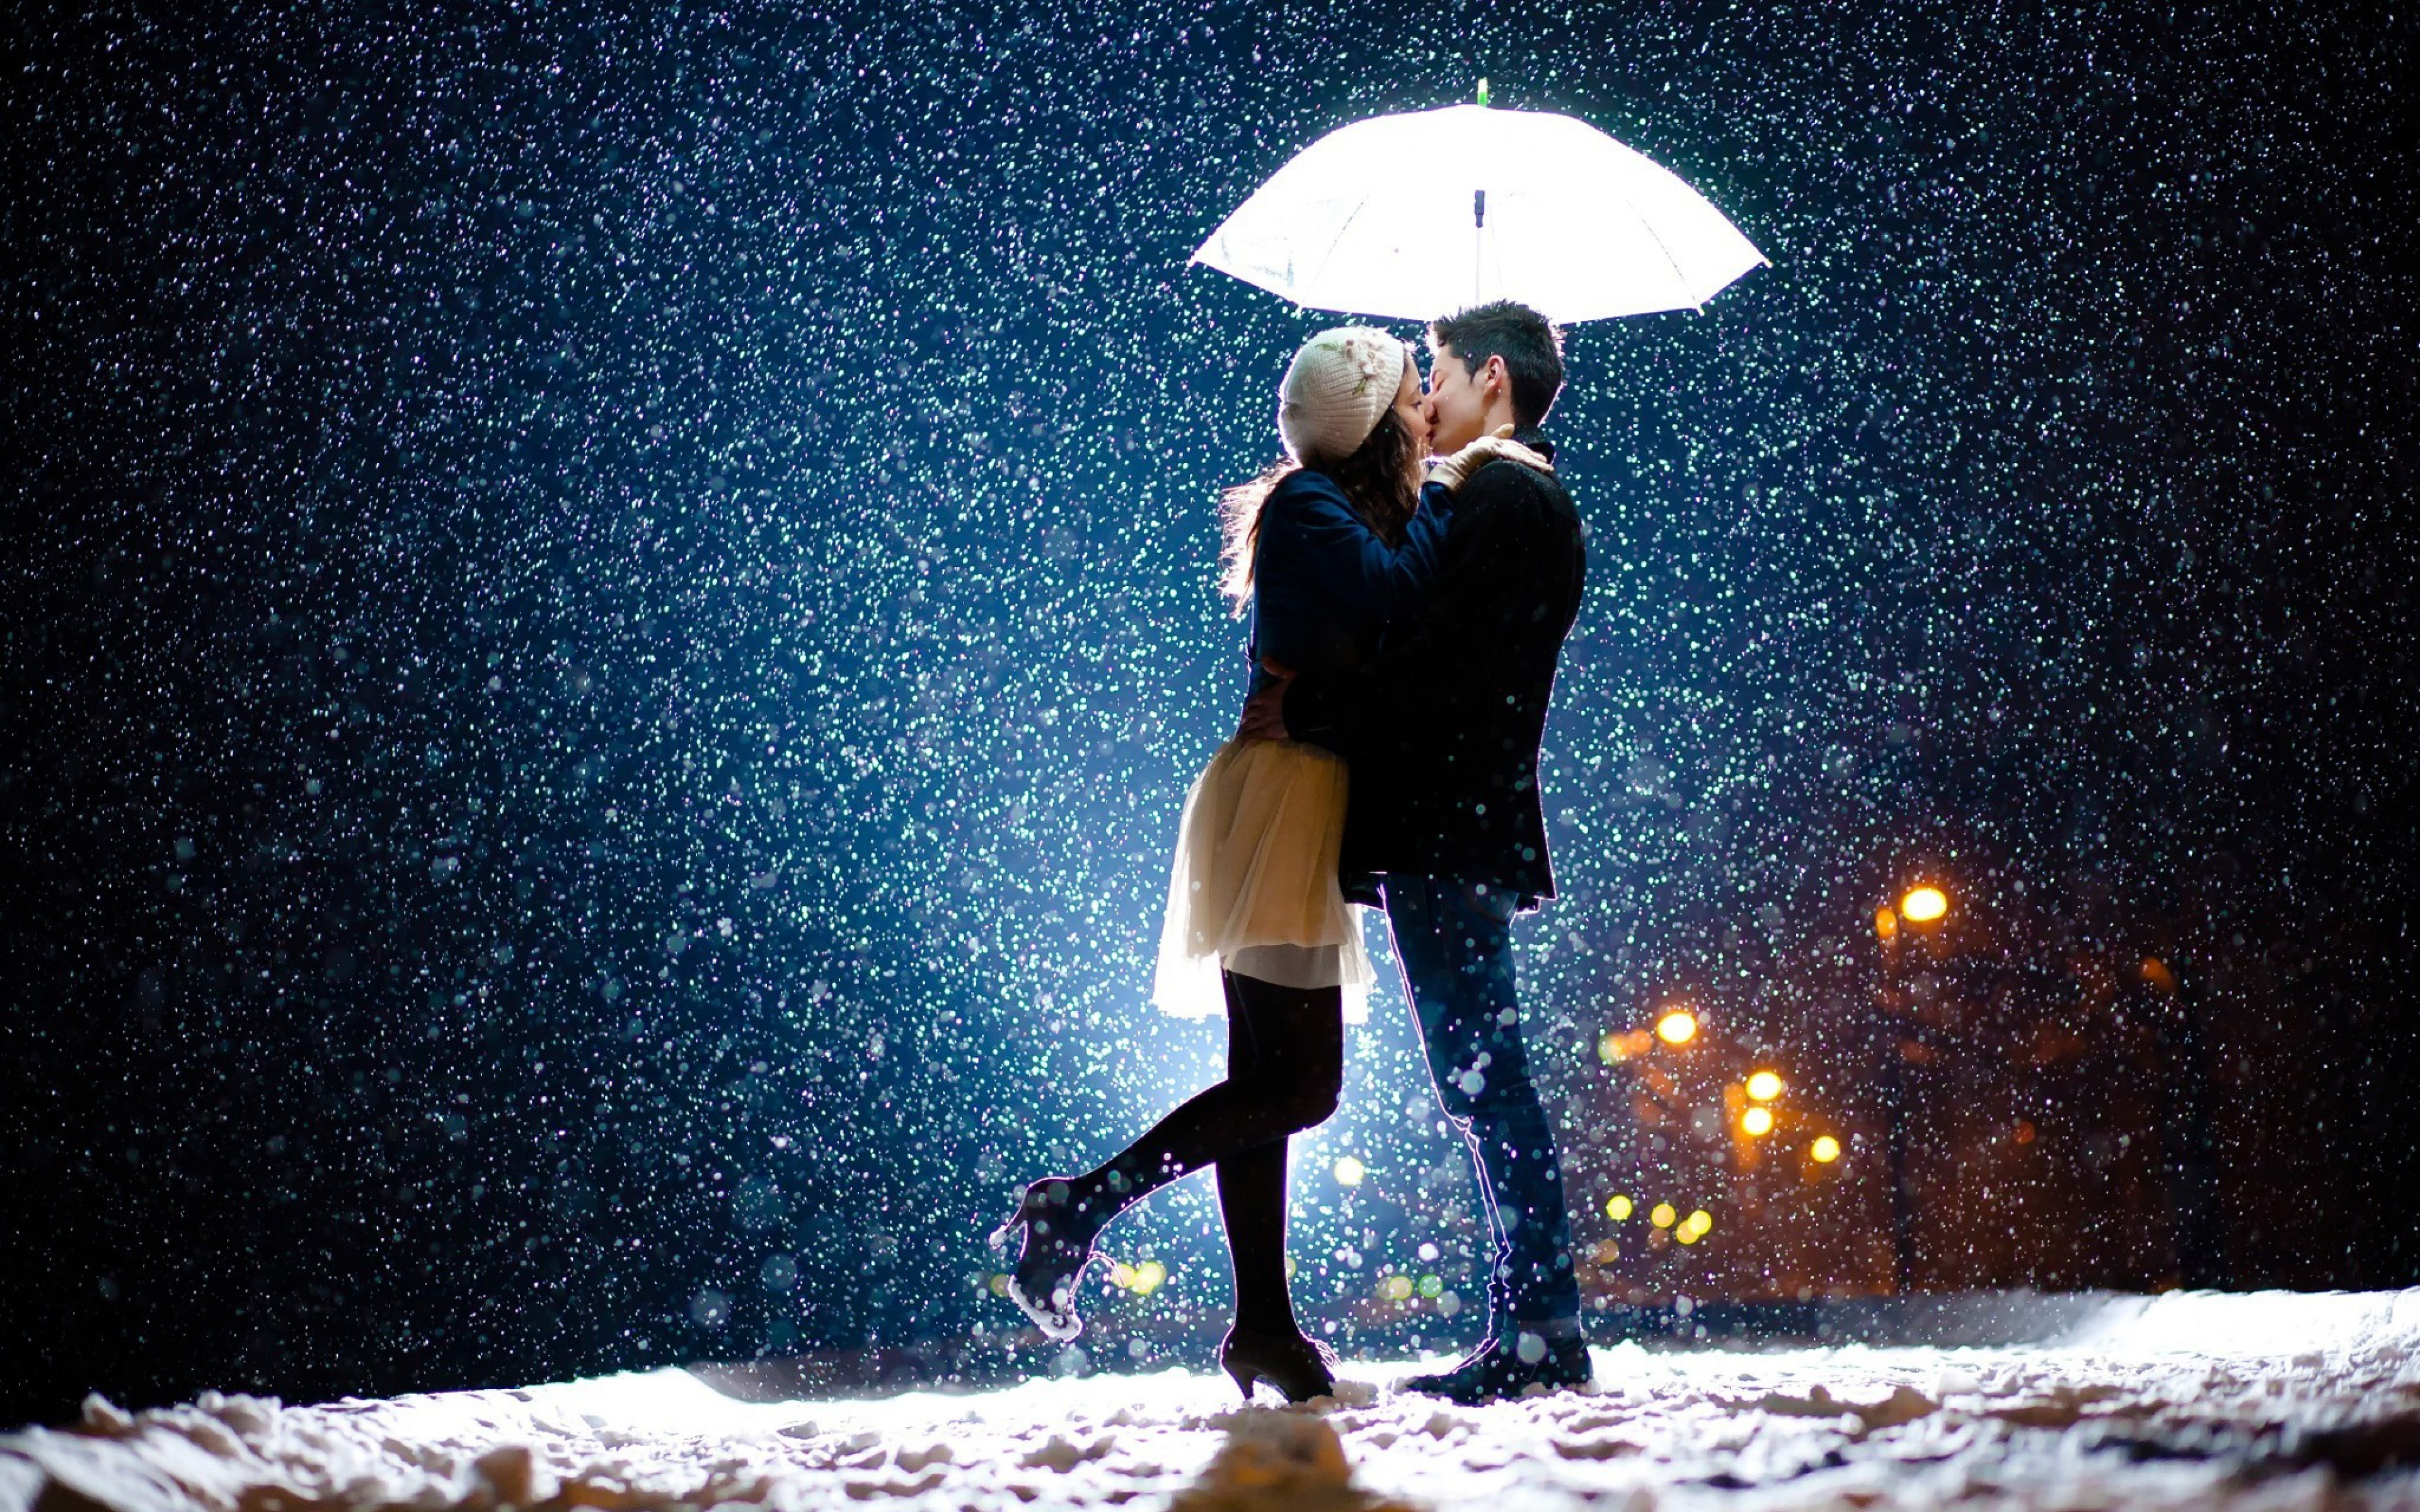 Couple Kiss In Snow Hd Love 4k Wallpapers Images Backgrounds